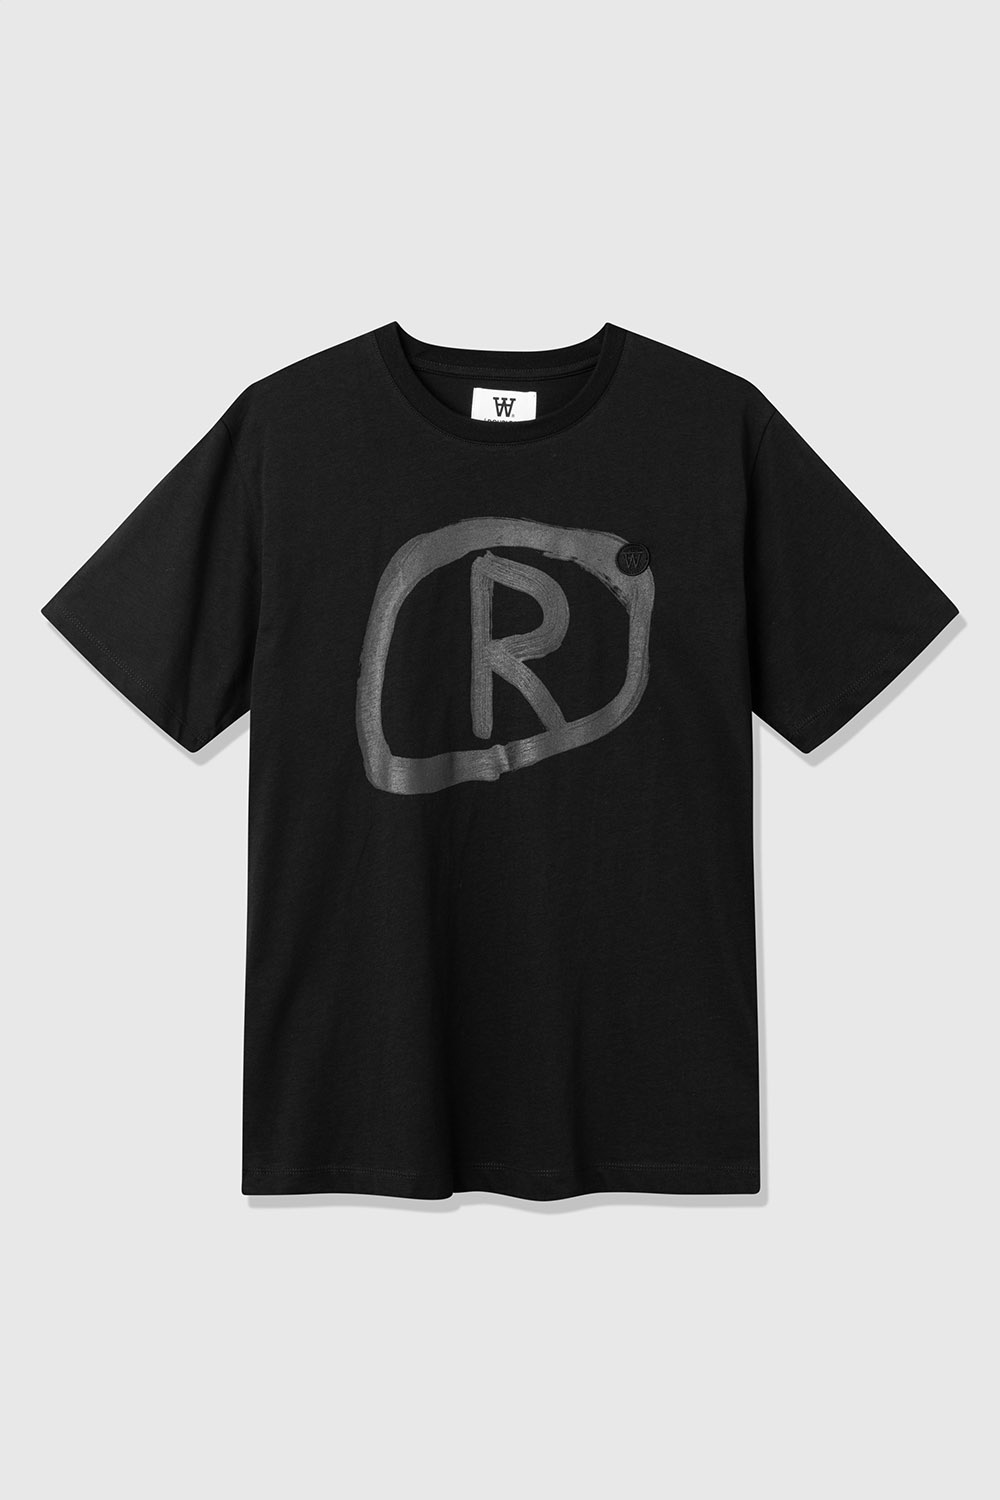 Ace Black R Organic T-Shirt-1